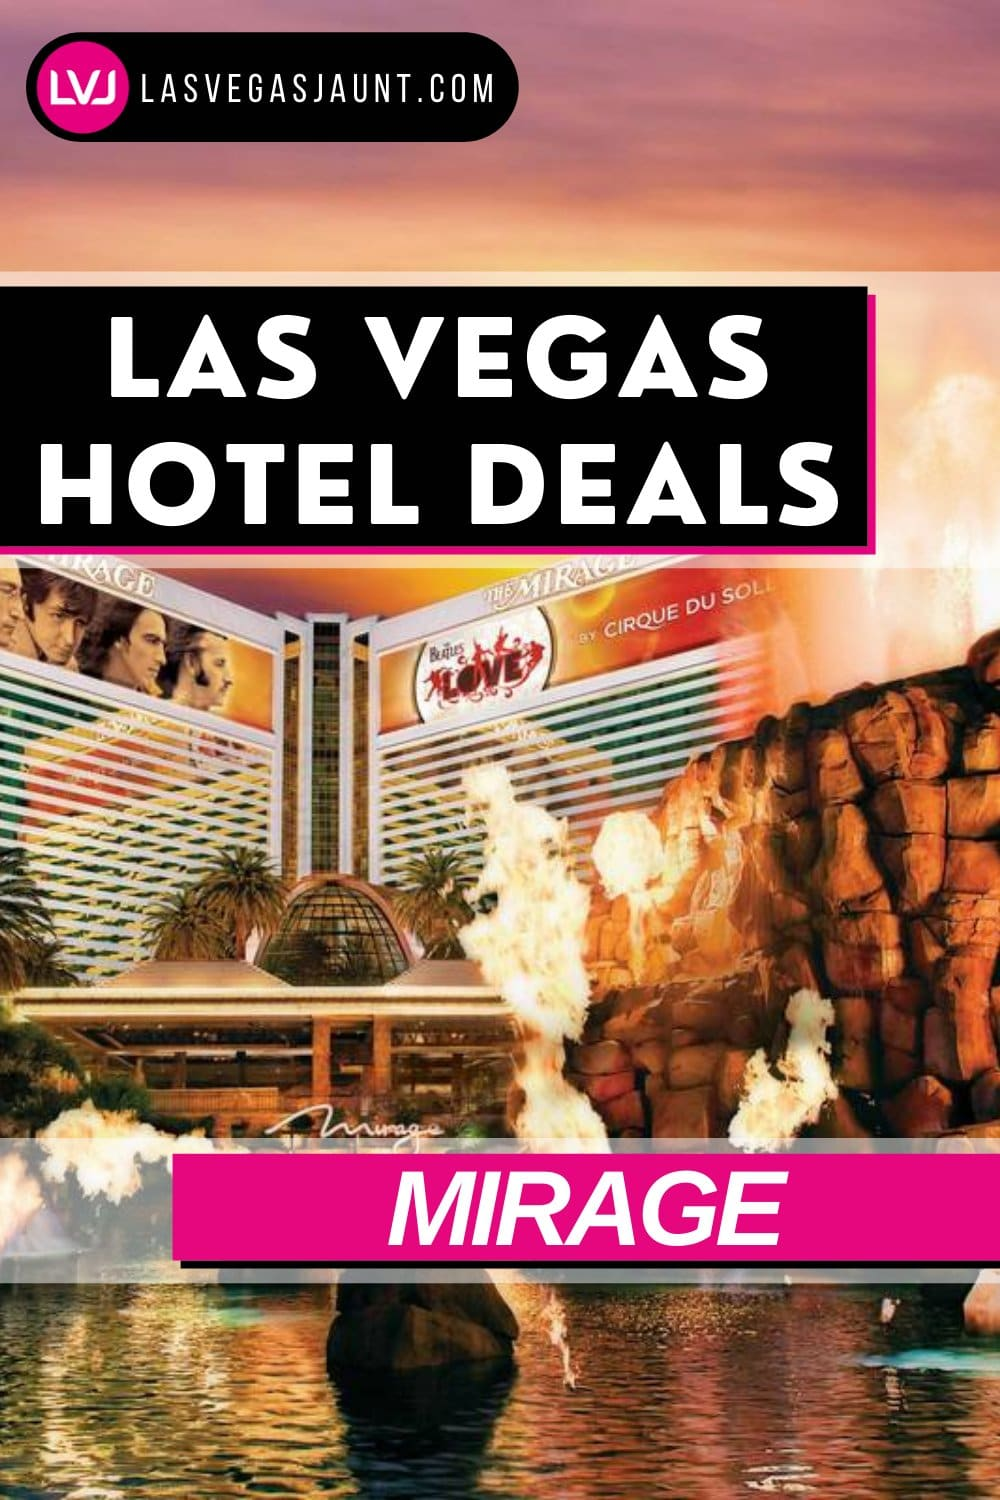 Mirage Hotel Las Vegas Deals Promo Codes & Discounts